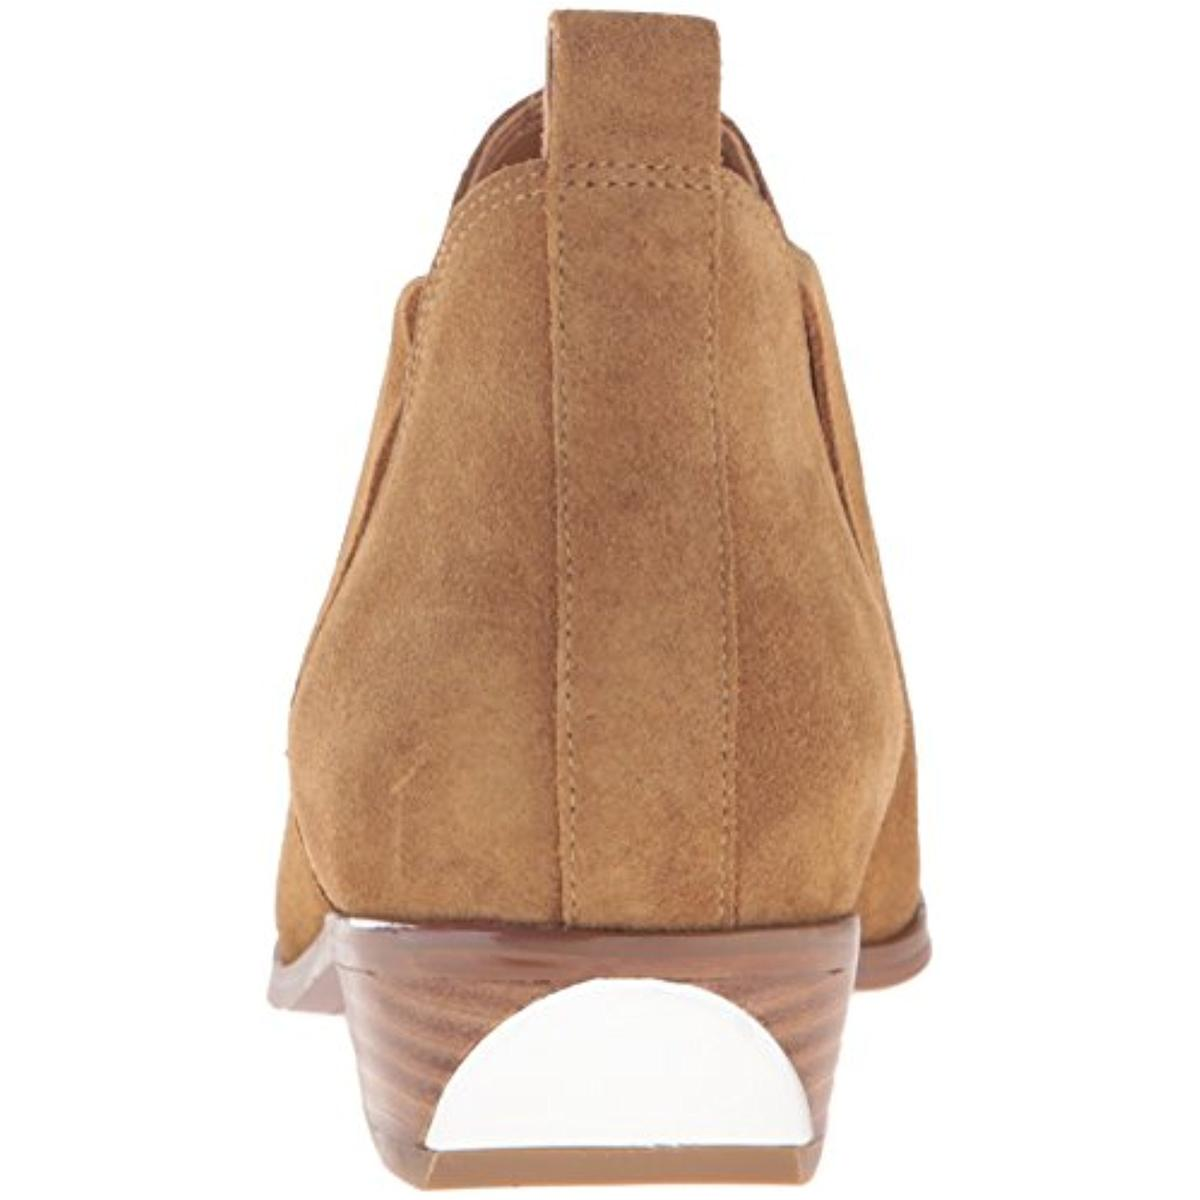 Kendall + Kylie Womens Violet Solid Ankle Ankle Solid Pointed Toe Booties Shoes BHFO 4283 e8a6b0